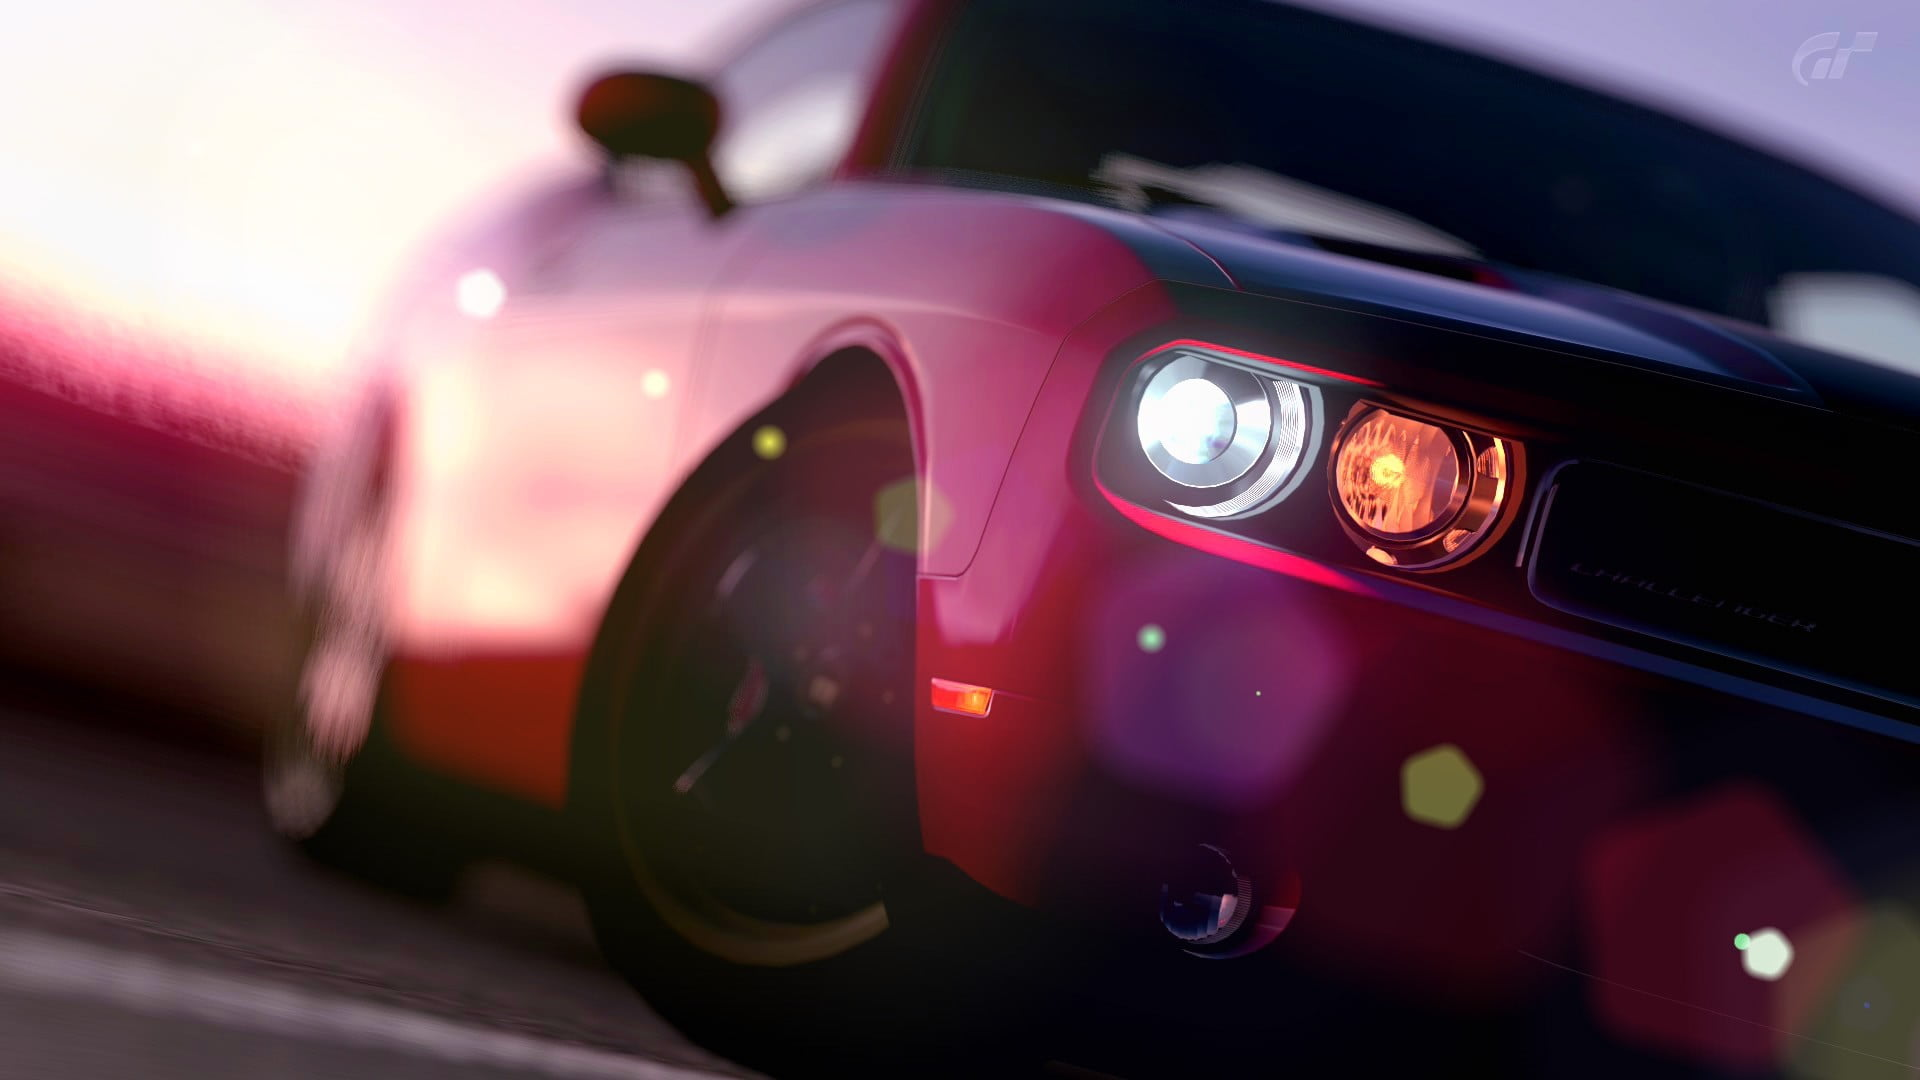 Dodge Challenger Hd Wallpapers Posted By Ethan Johnson